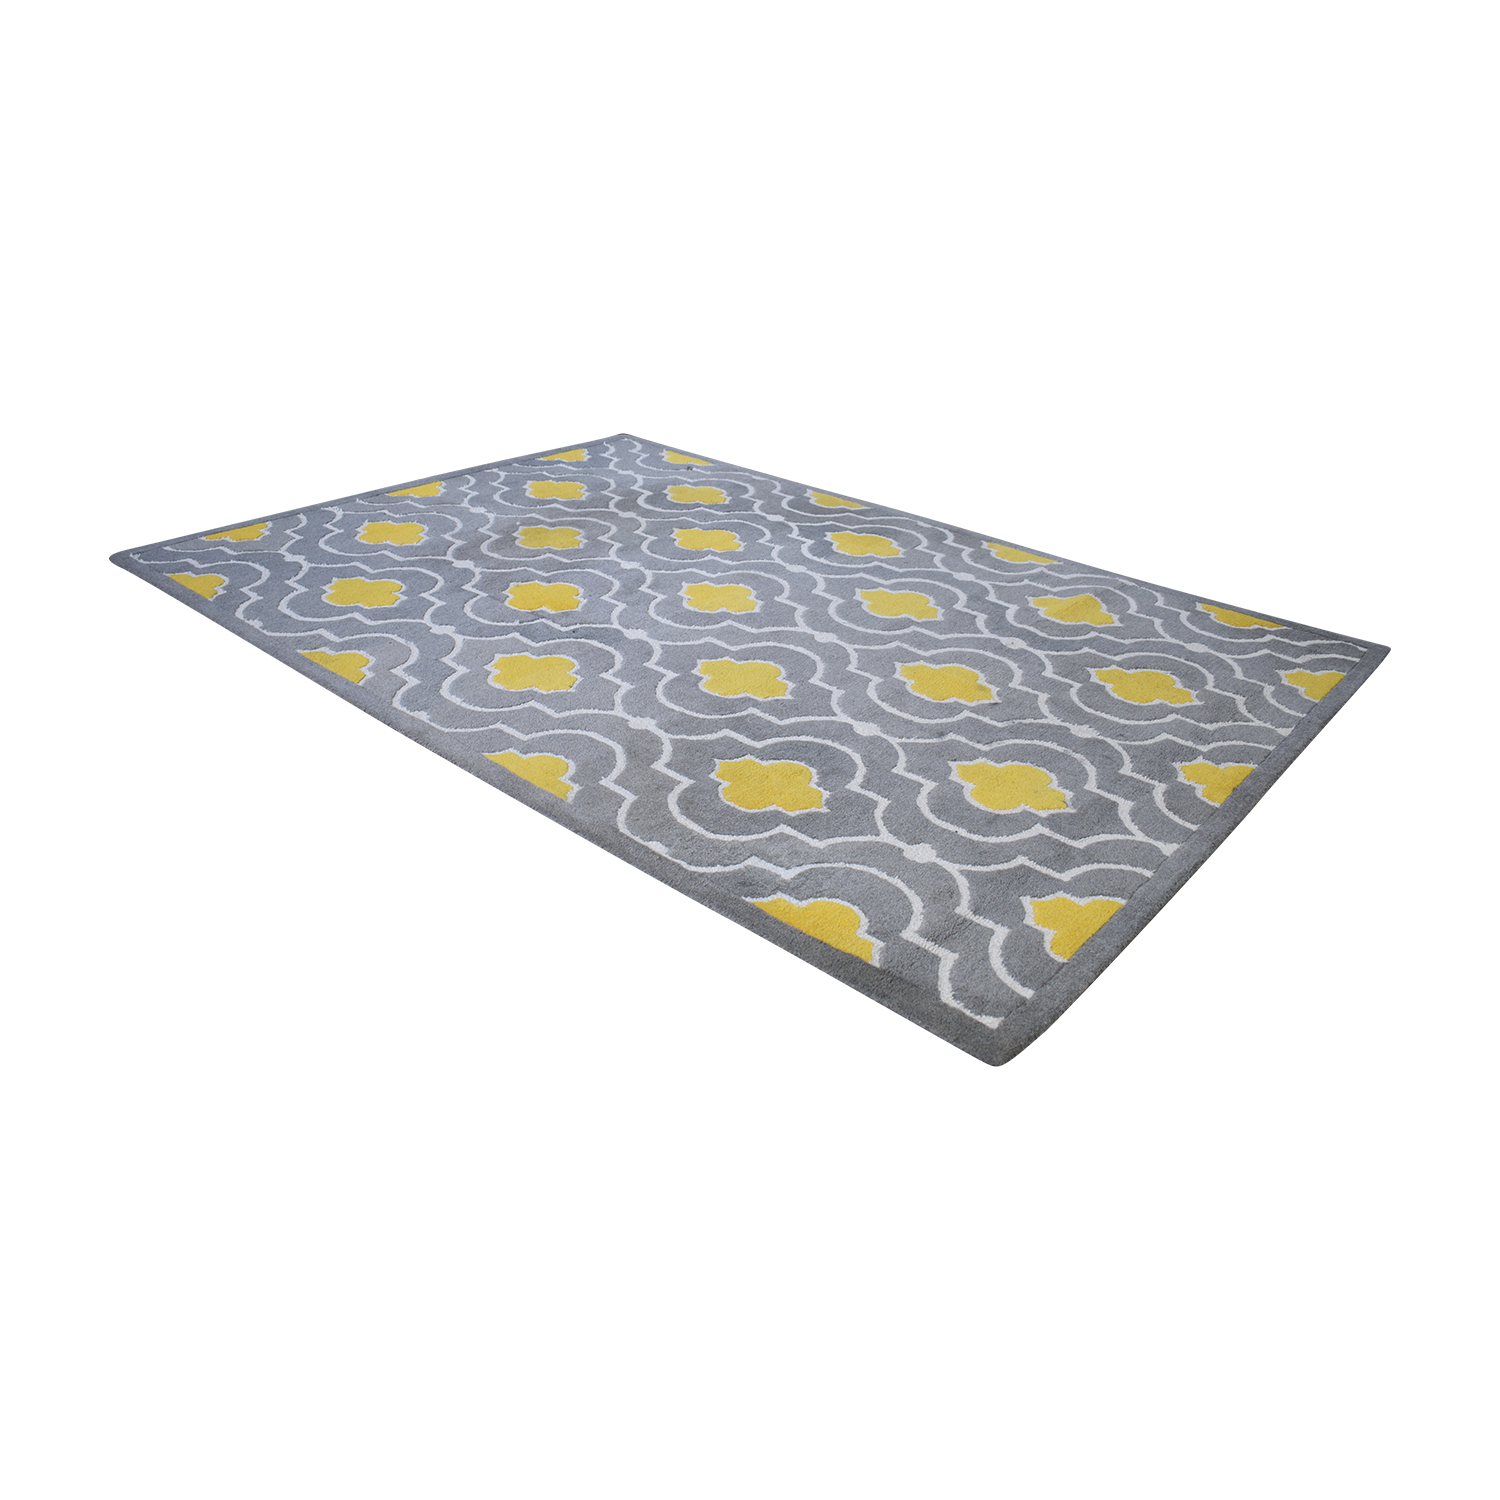 Loloi Brighton Grey and Yellow Rug sale